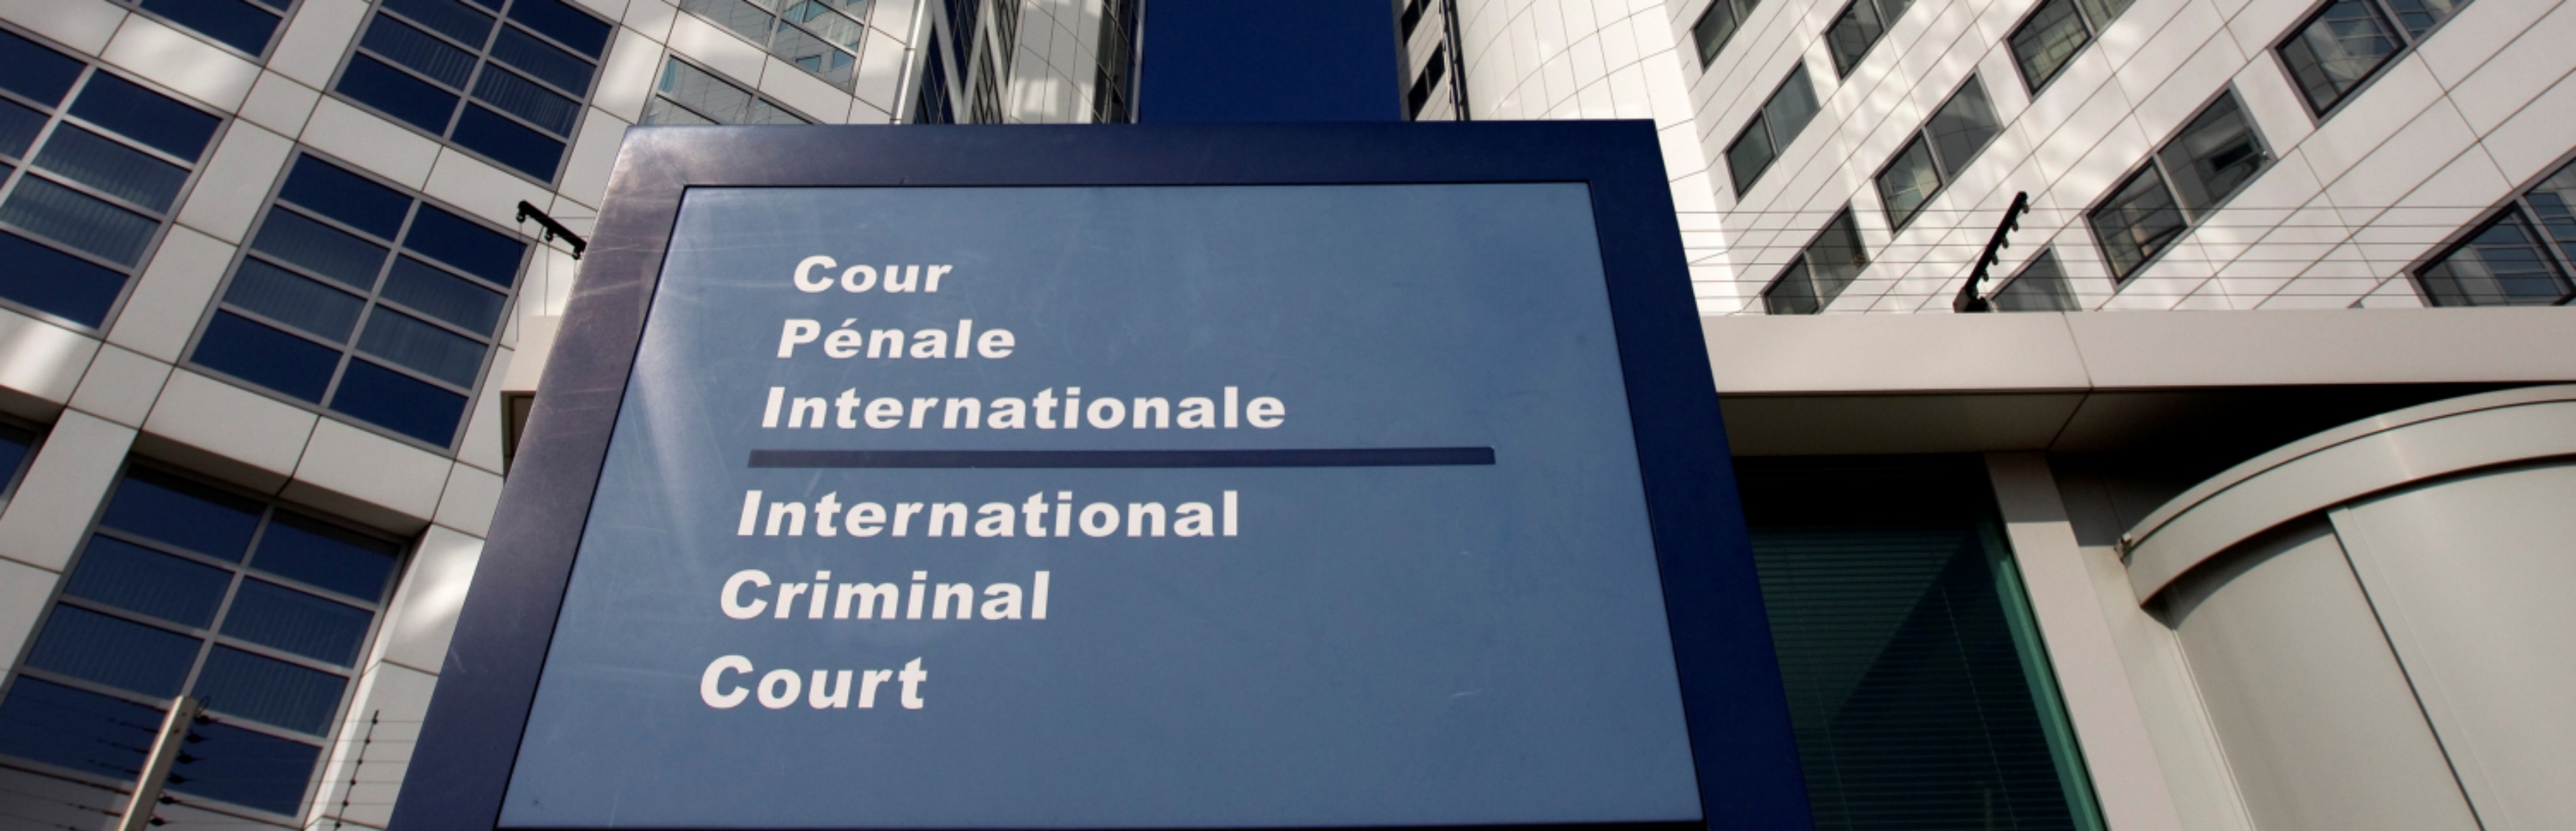 Icc News: Latest icc News Live | Icc Live News Online - The Wire